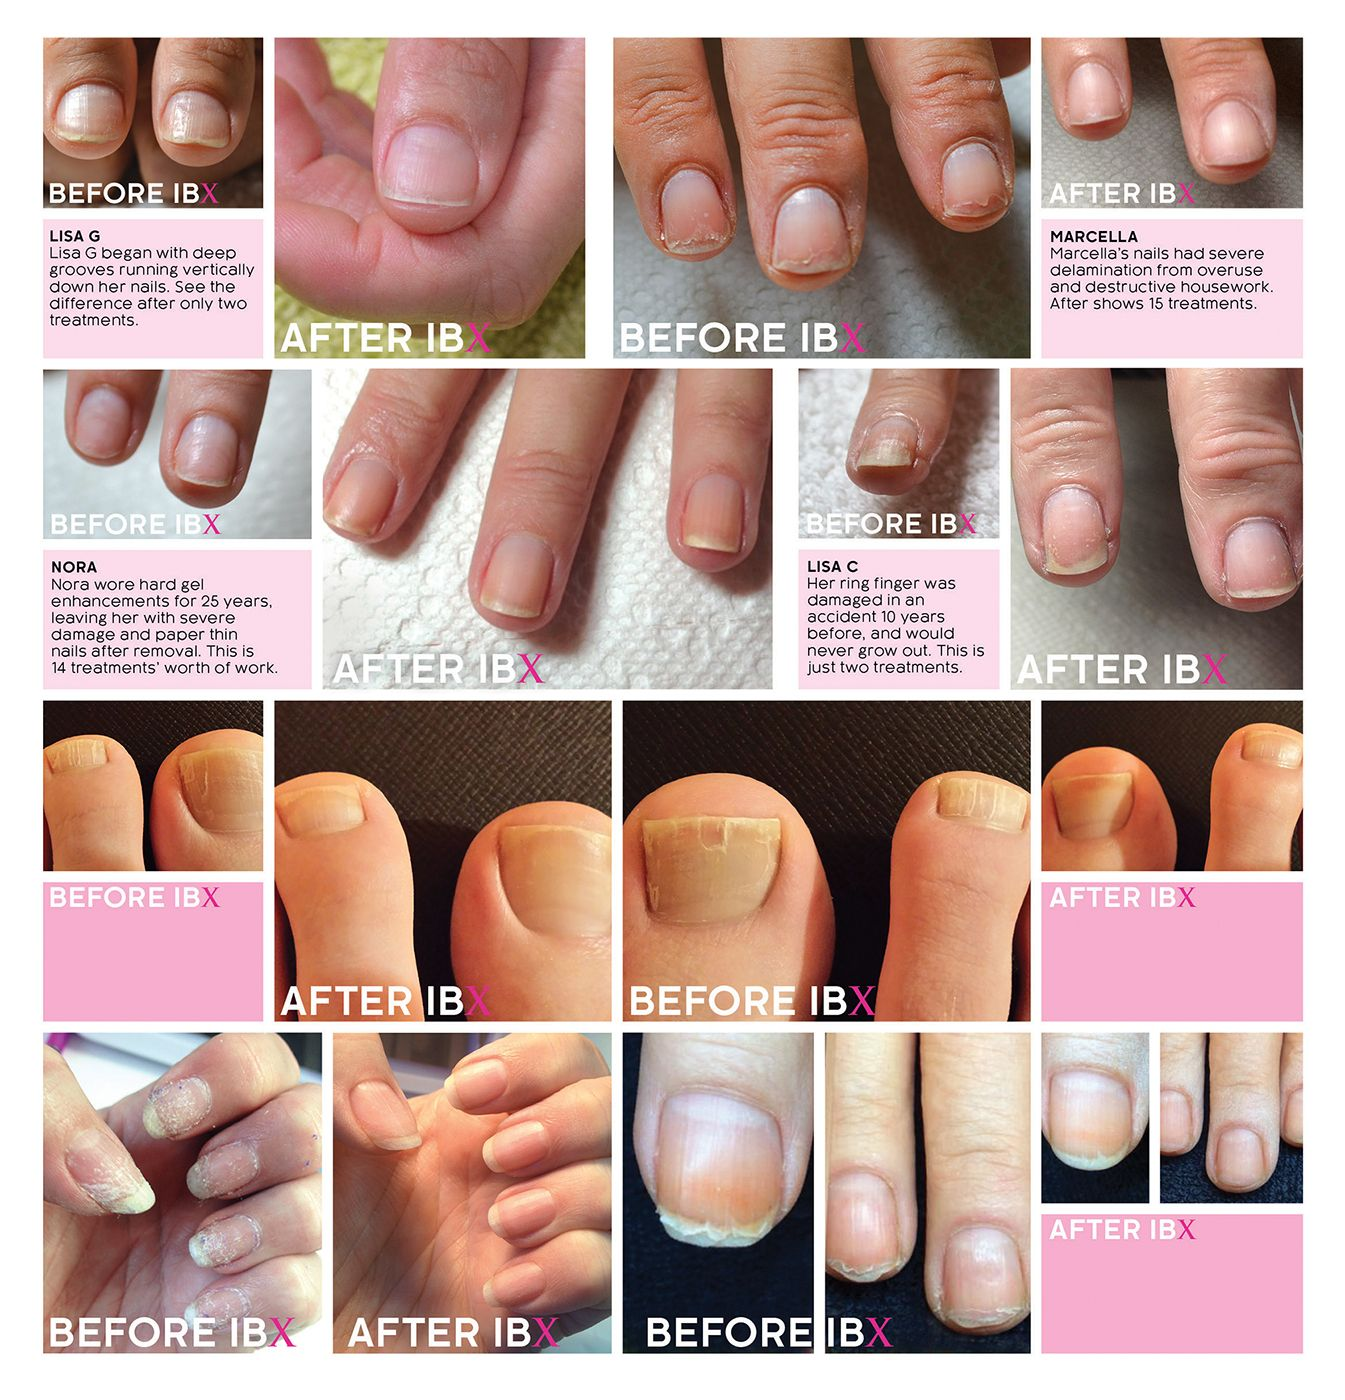 Pin by Nadya Zm on ibx nail cure | Pinterest | Bio sculpture and ...